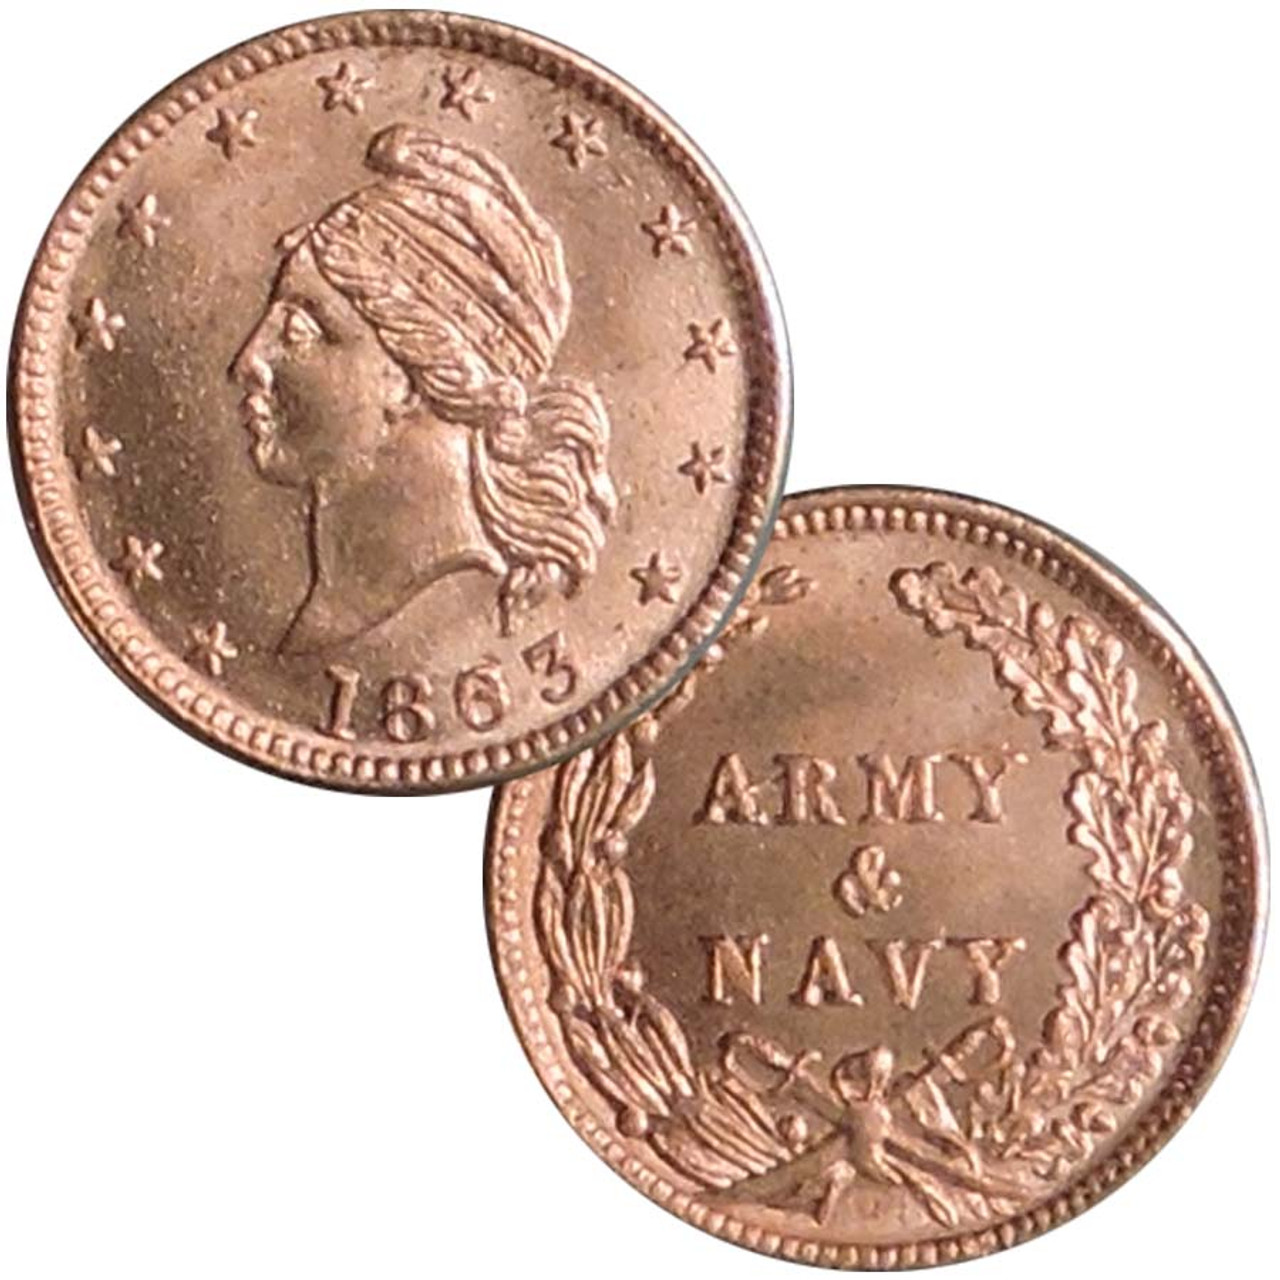 Bronze Civil War 'Army & Navy' Token